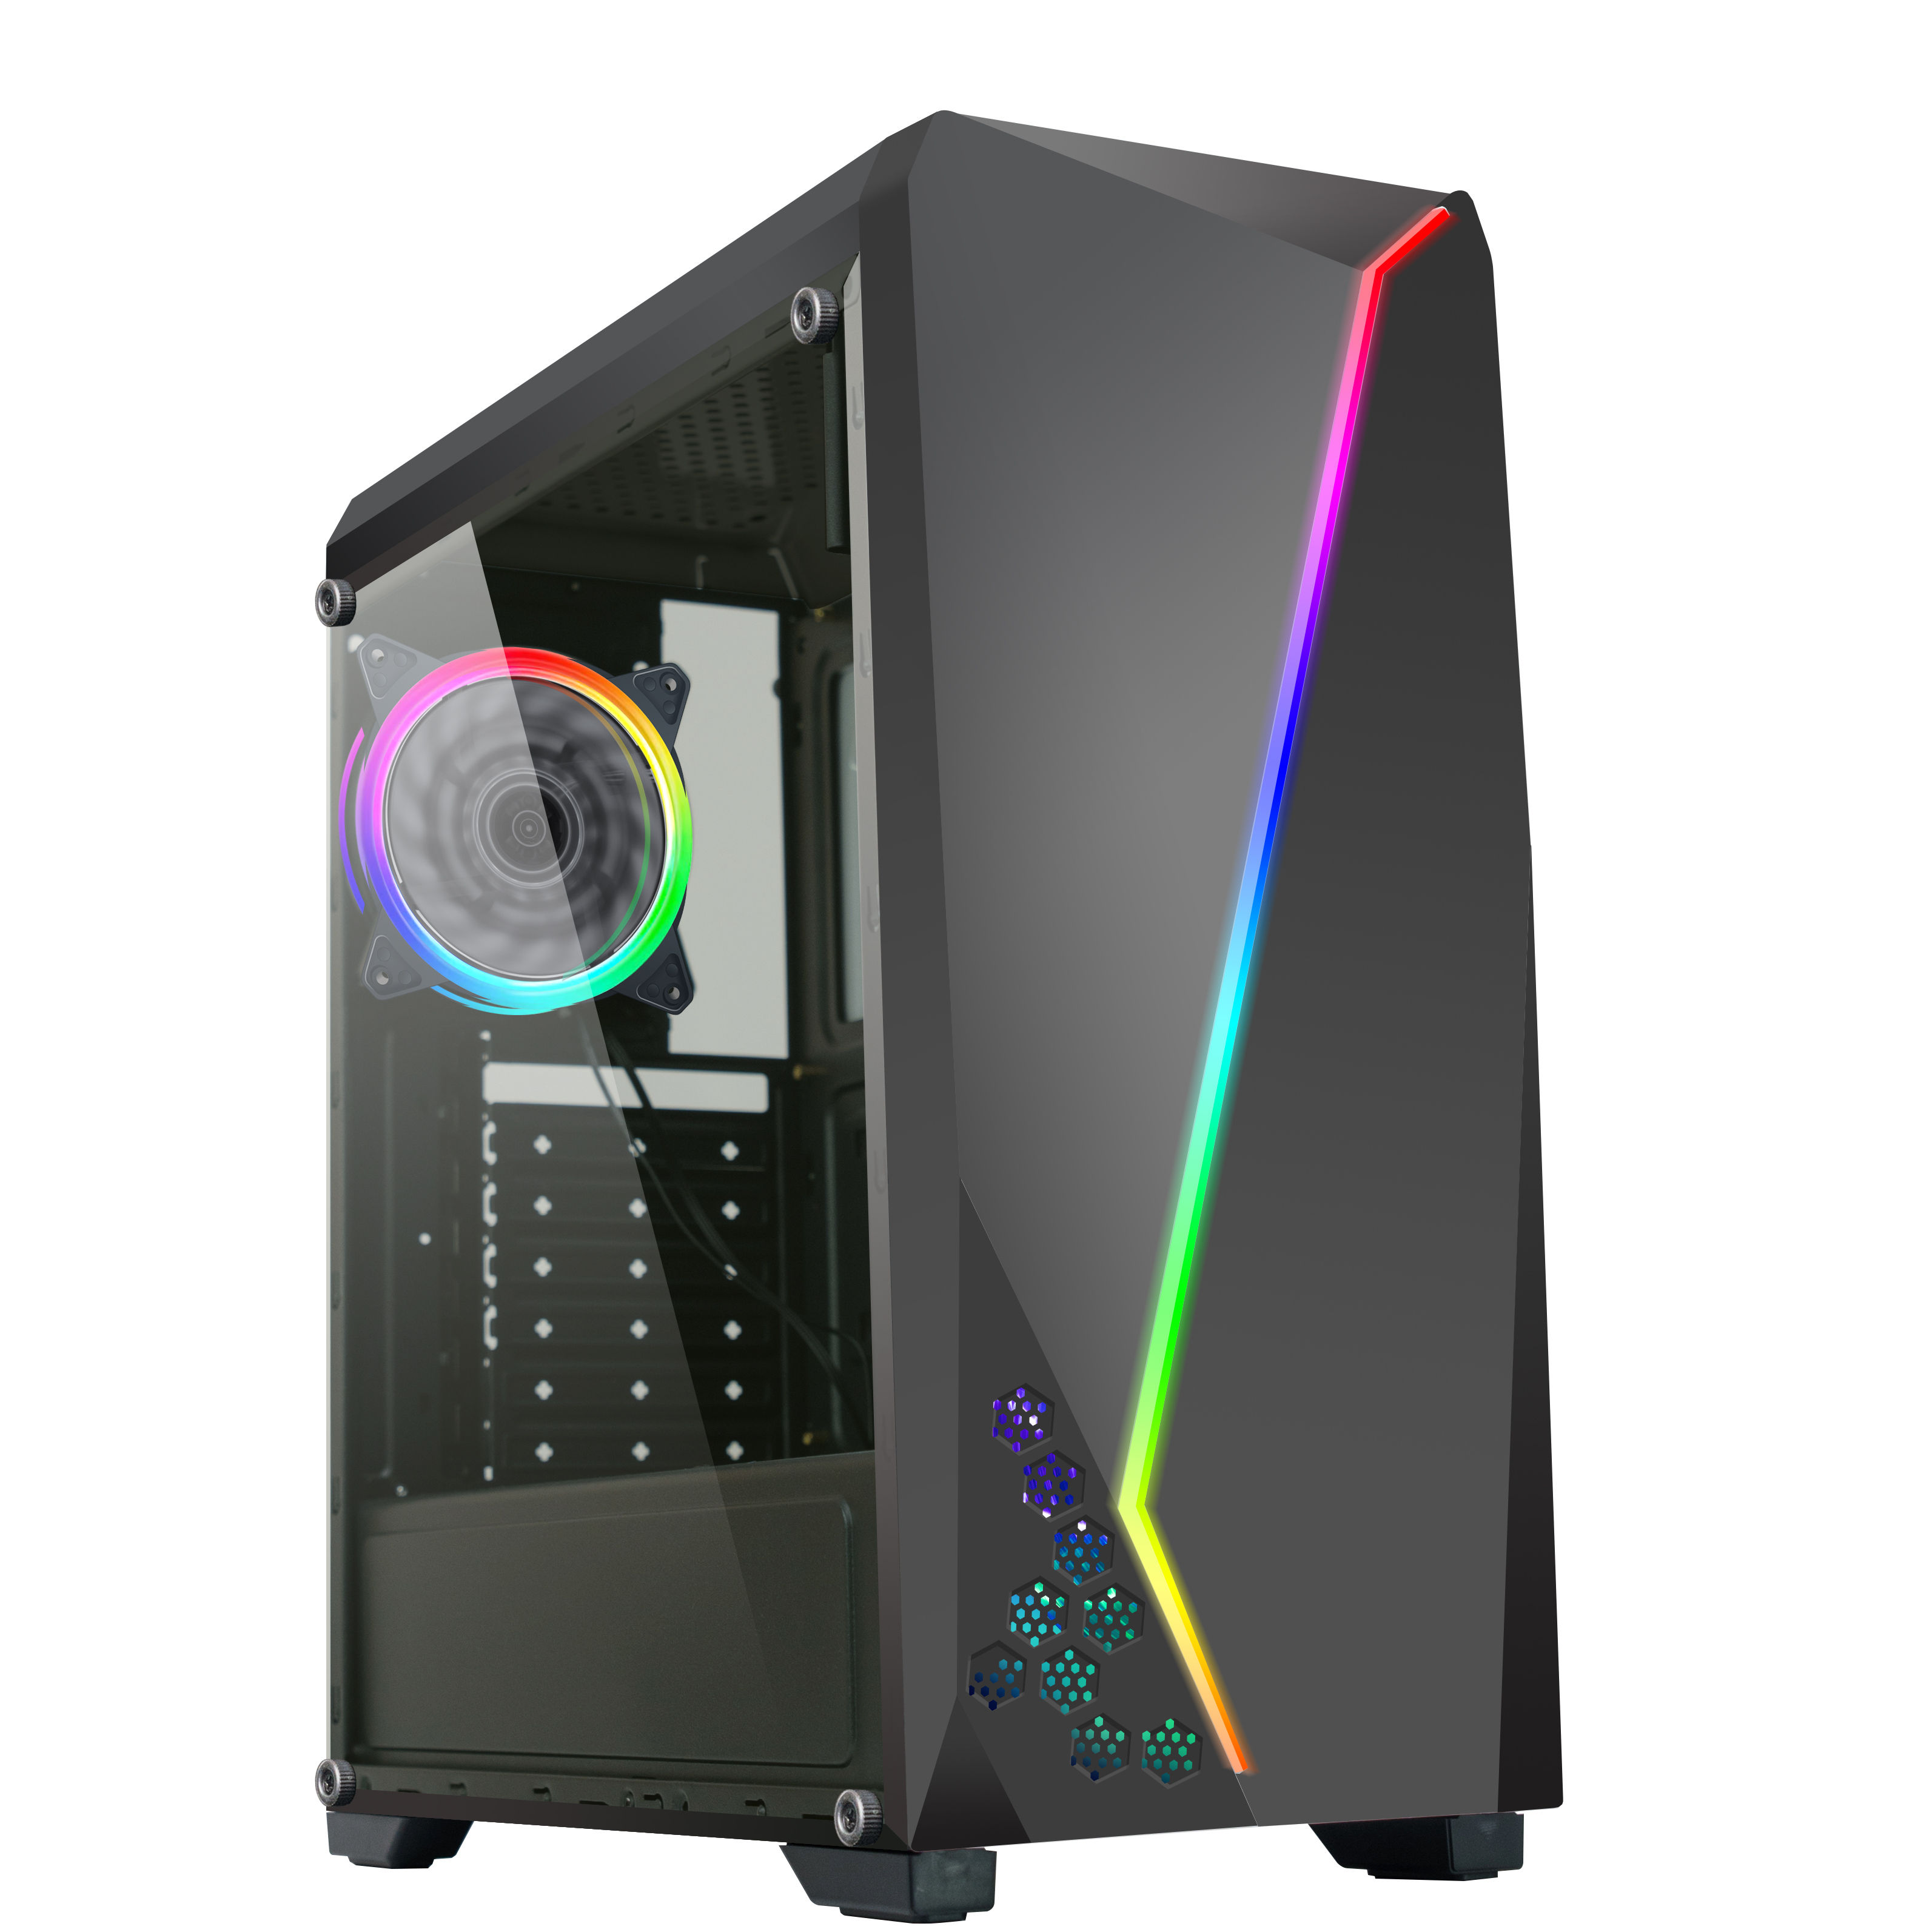 Factory direct sale New Design RGB Strip ATX Desktop Tower Acrylic PC Case Diy Computer Case Chassis